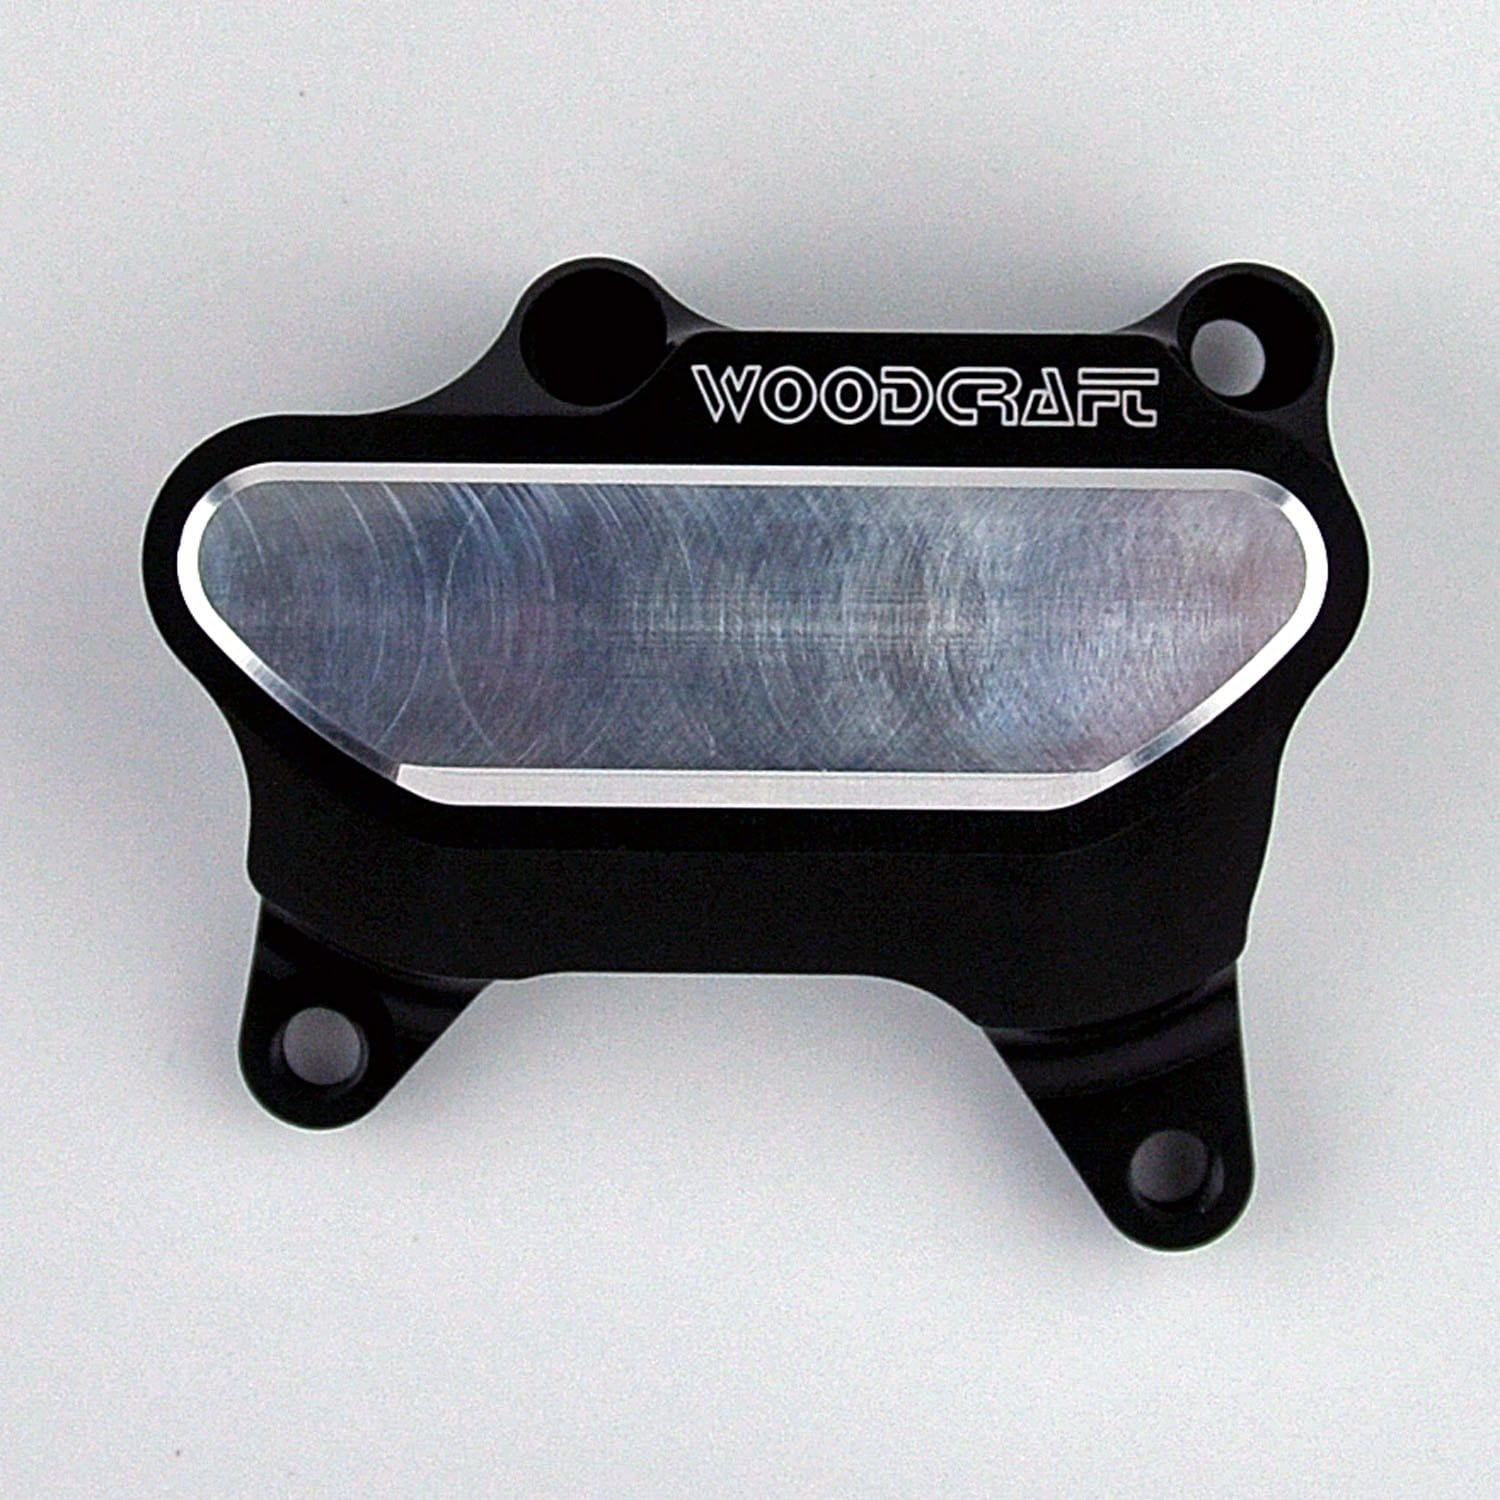 60-0790WPC KTM 790 2018-19 RHS Water Pump Cover Protector Assembly - Woodcraft Technologies - Motorcycle Parts